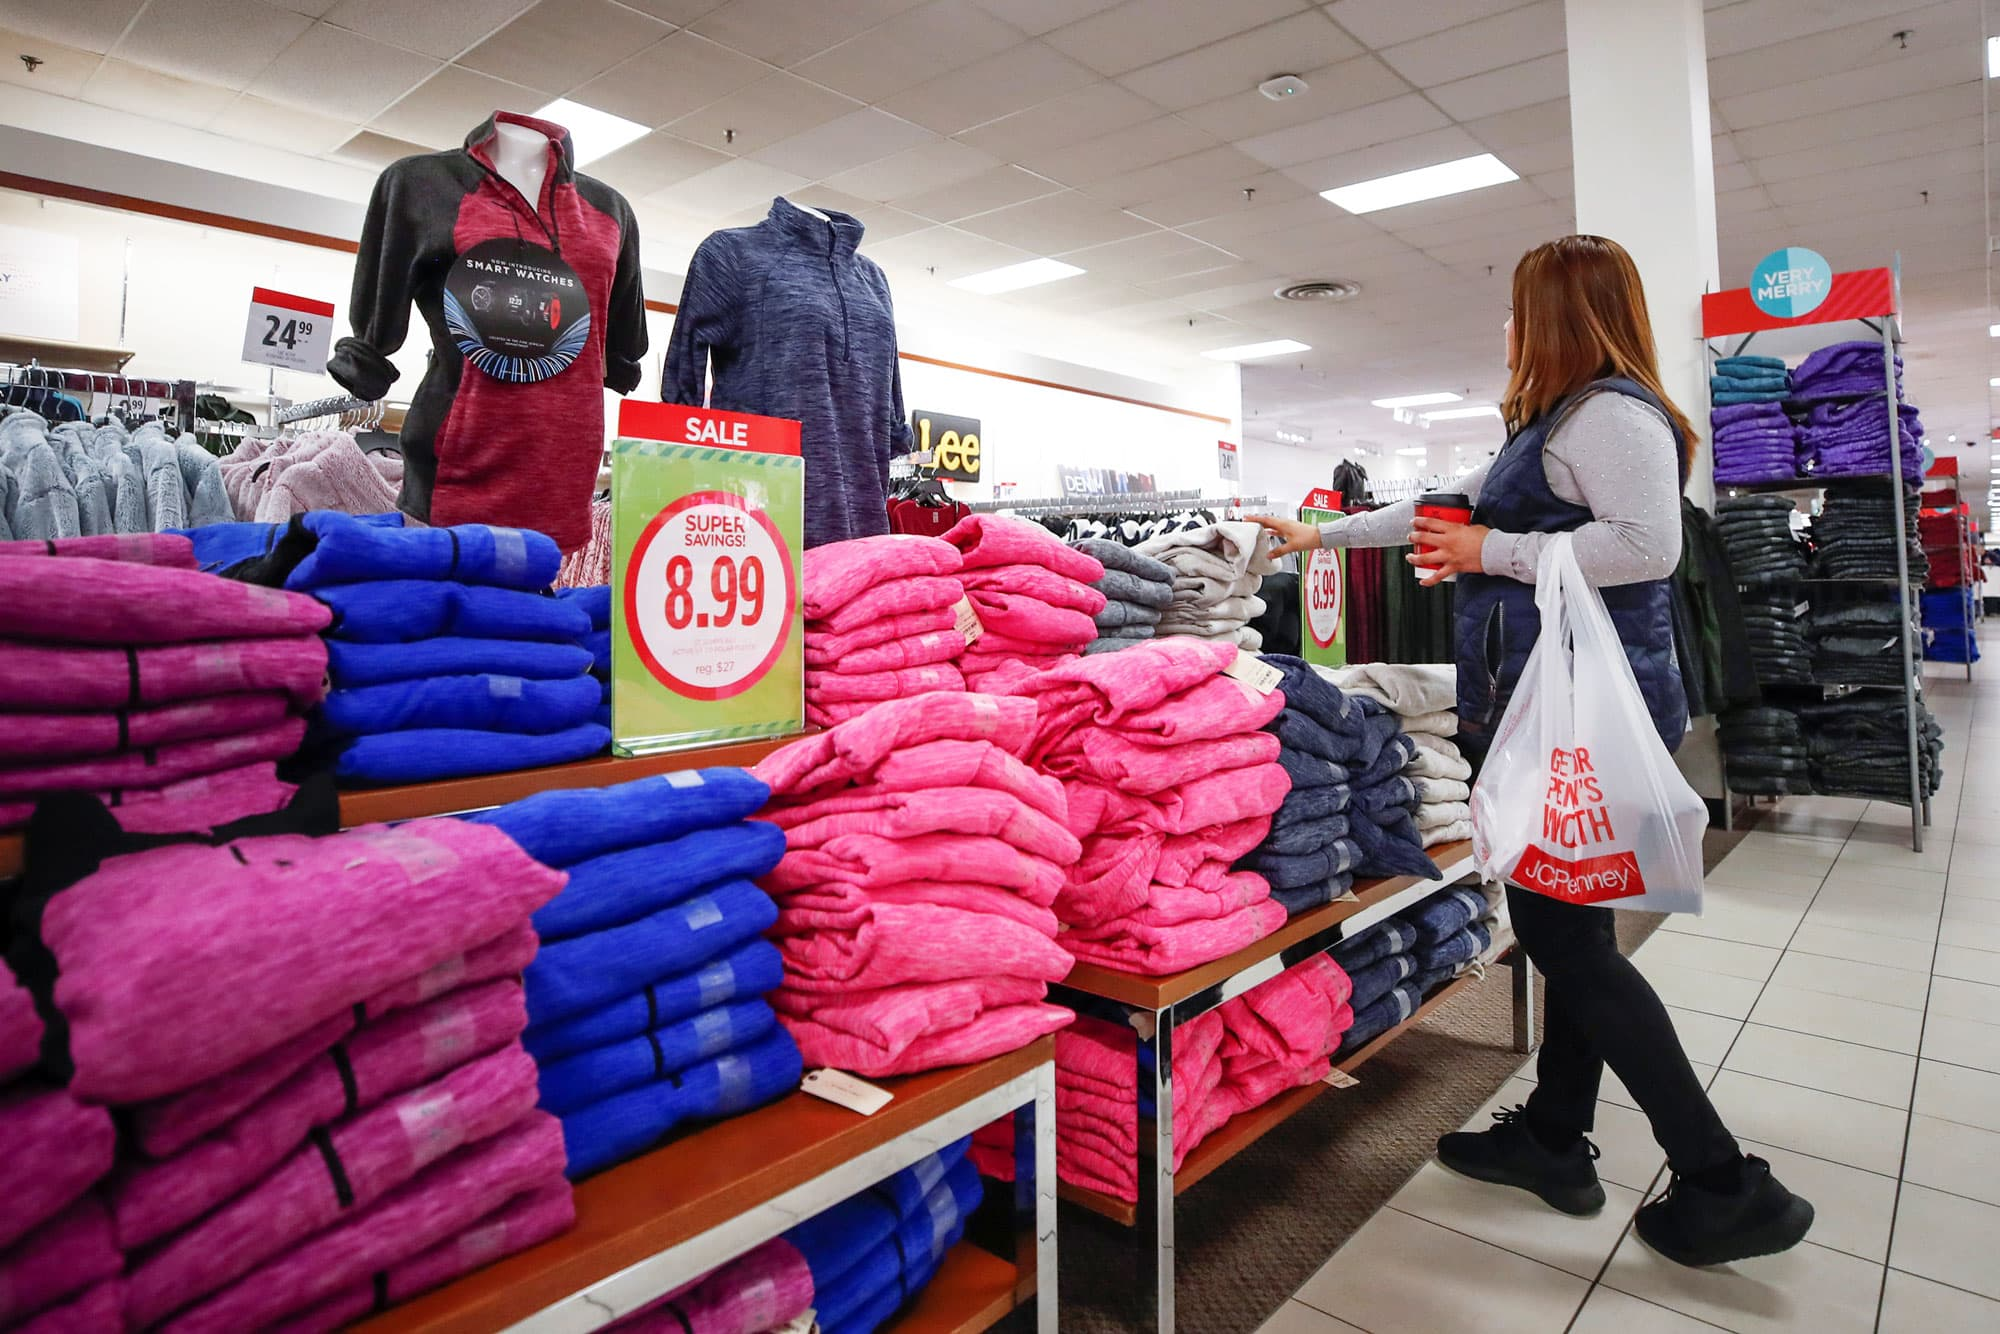 Latest retail results show department stores need more than touch-ups. They need reinvention